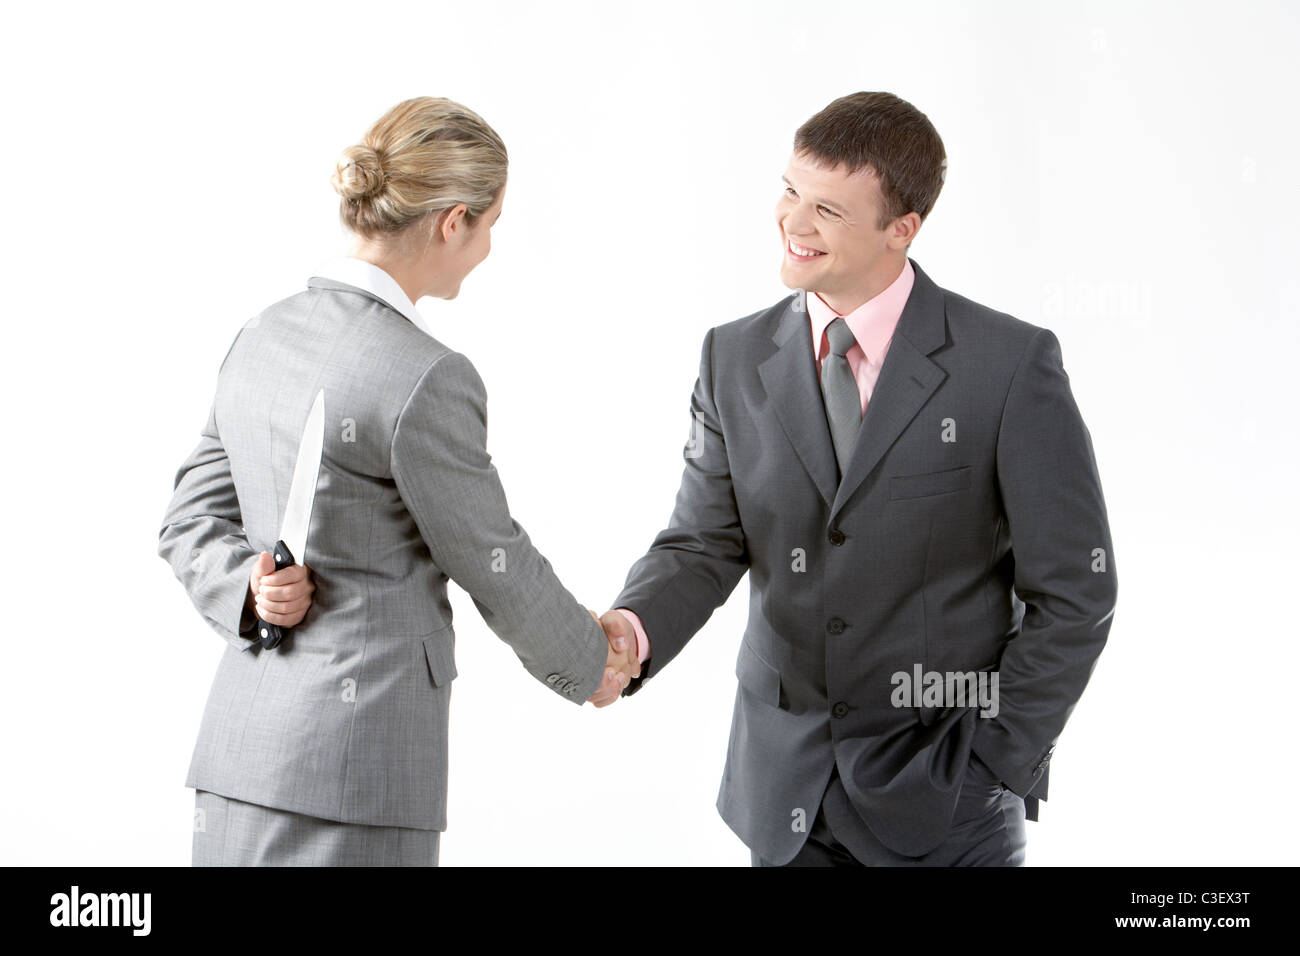 Portrait of business partners handshaking while female holding knife behind her back - Stock Image